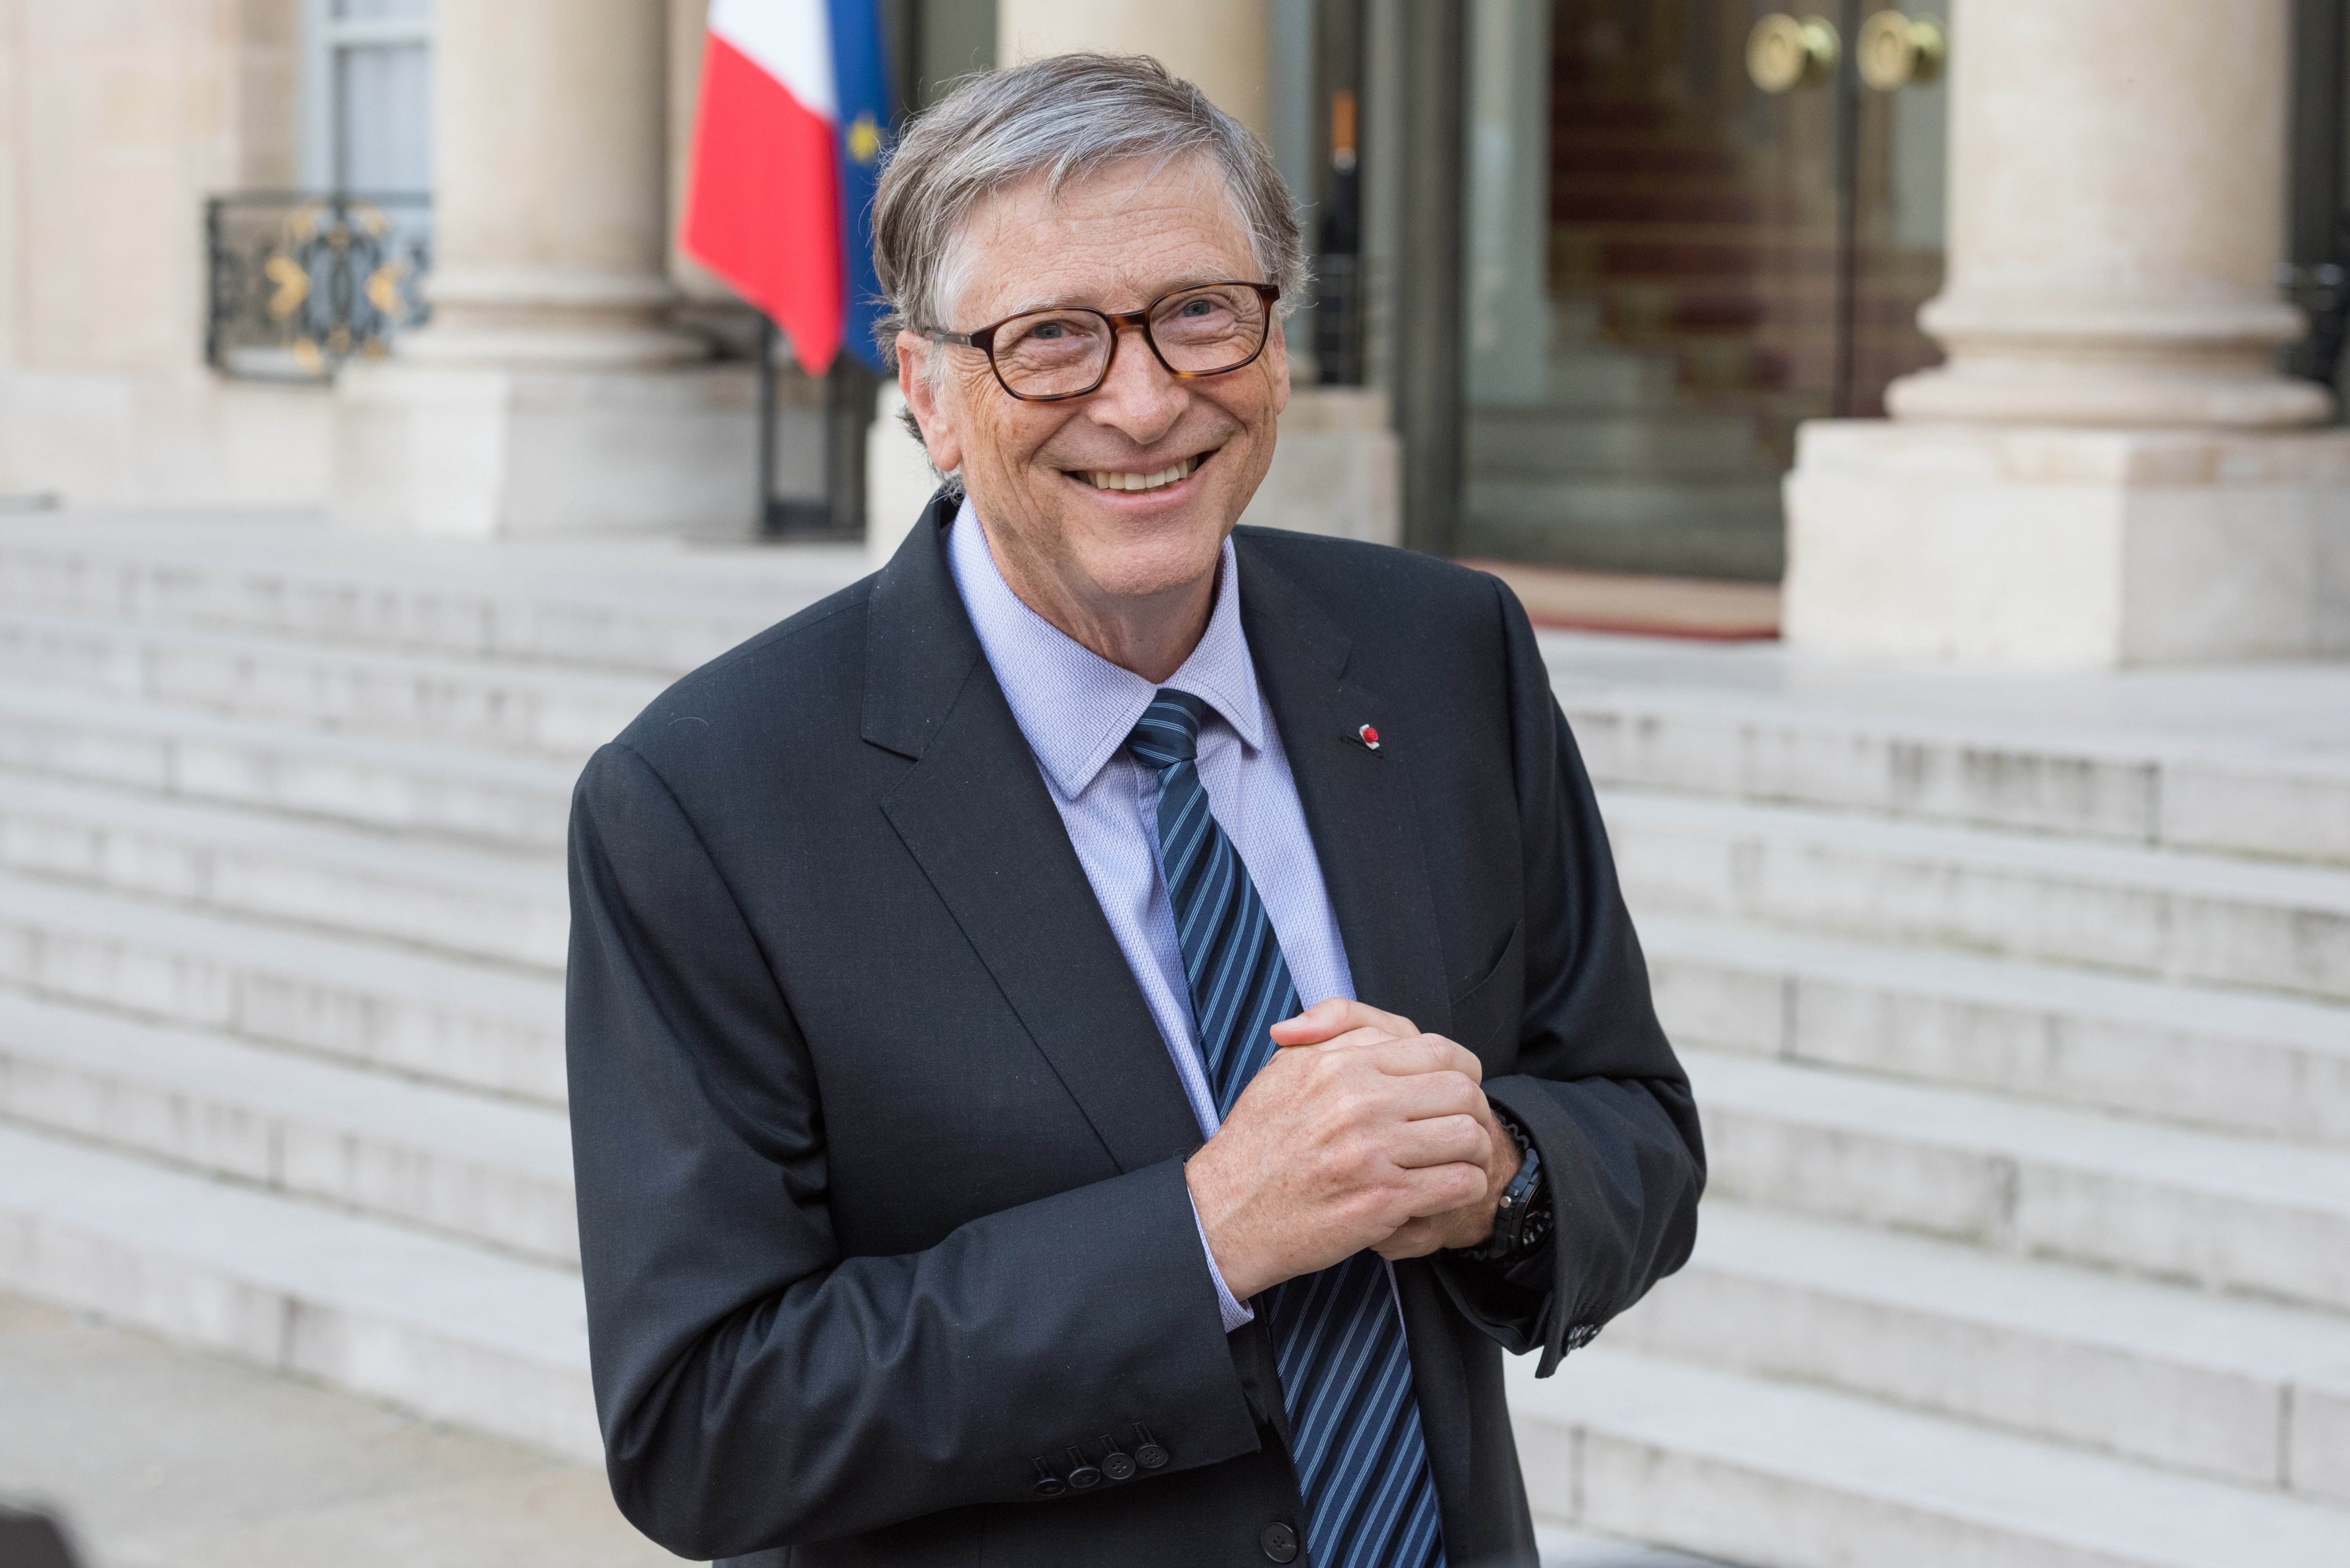 Bill Gates at the Elysee Palace in April 16, 2018, Paris, France | Photo: Shutterstock